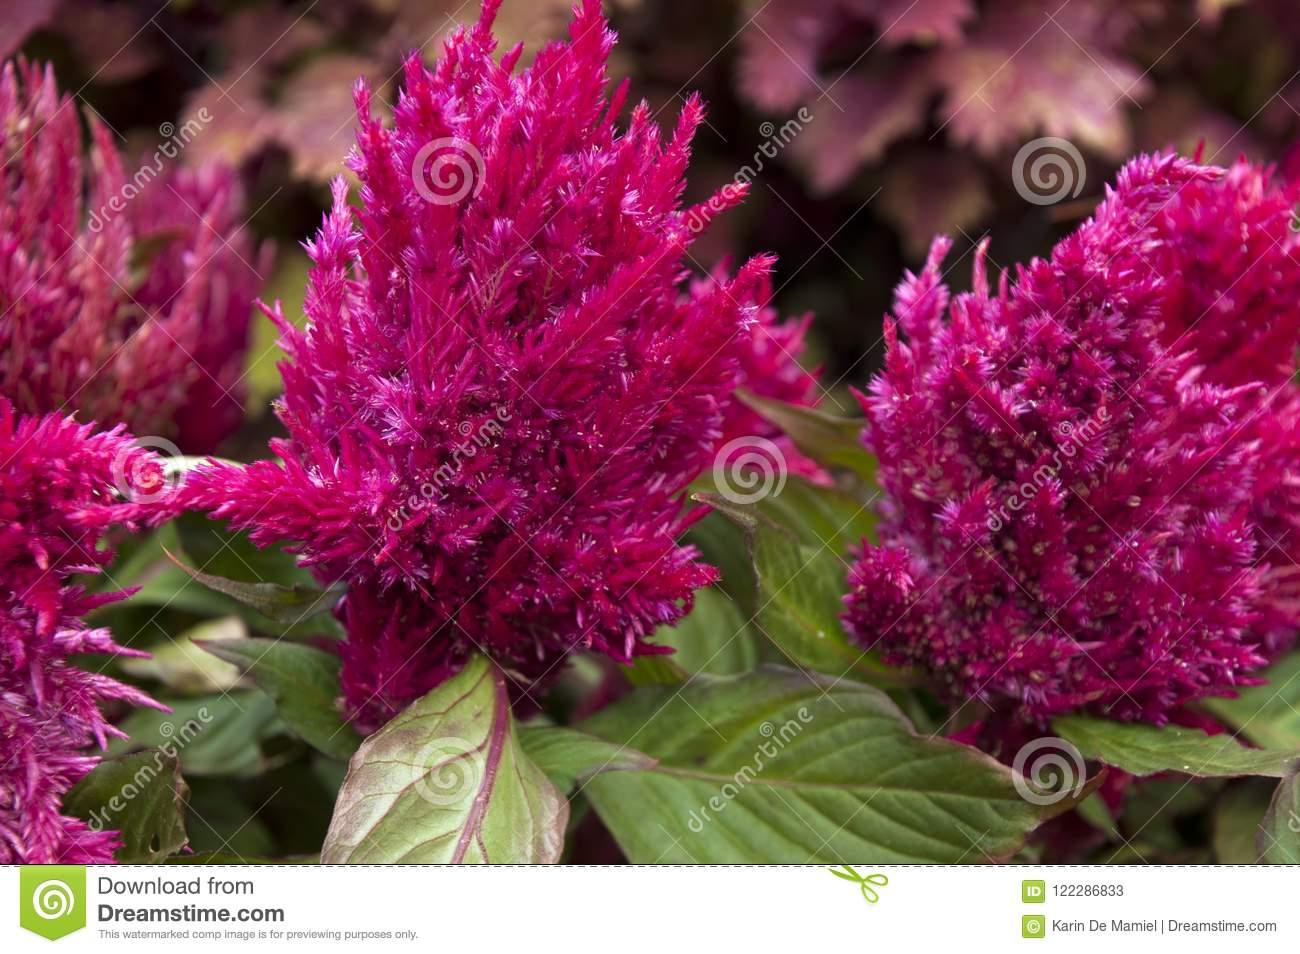 Pink Flowers Australia Feather Celosia Plant With Bright Pink Flowers Stock Image Image